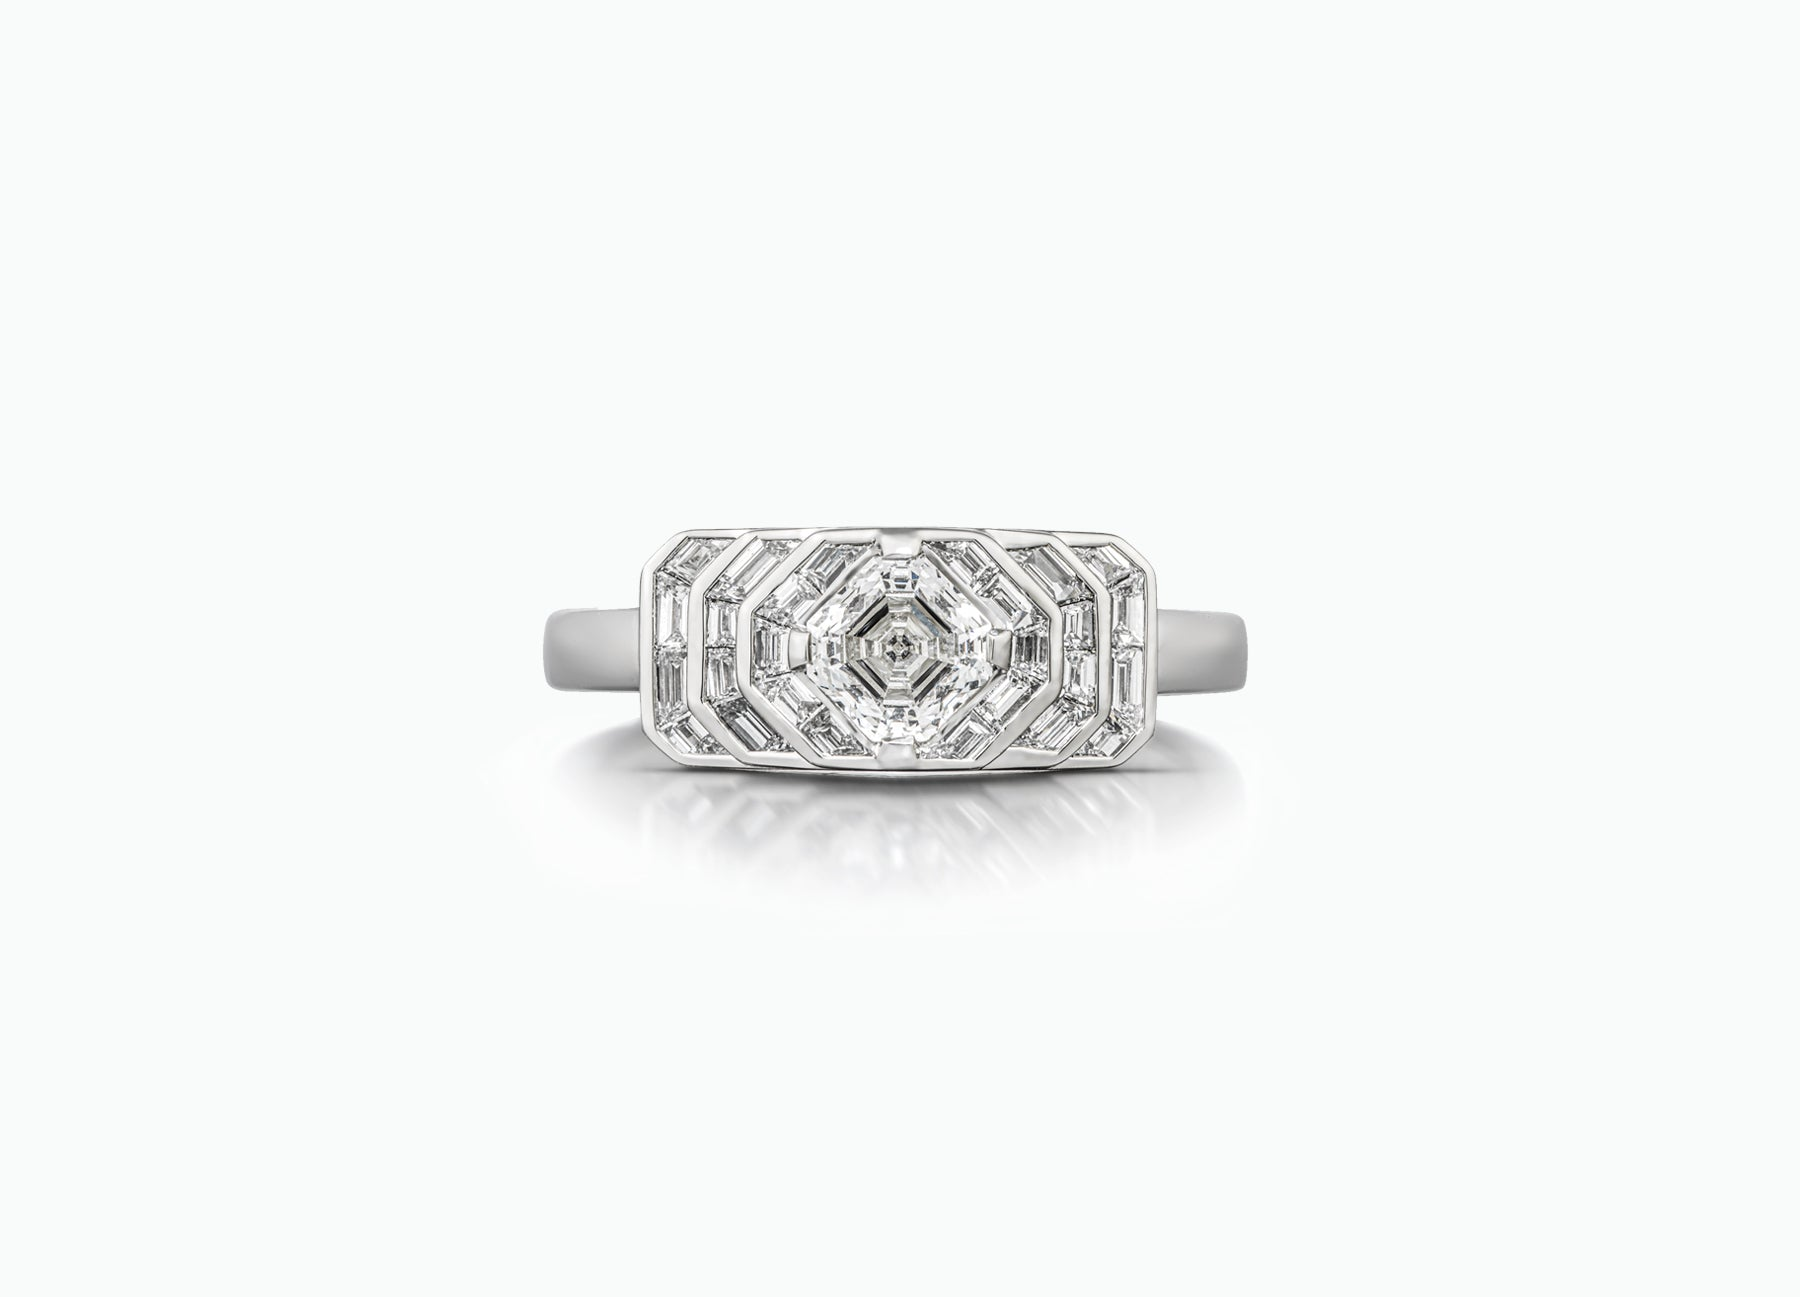 Palace Deco diamond engagement ring with an Asscher cut centre diamond by Tomasz Donocik Front View